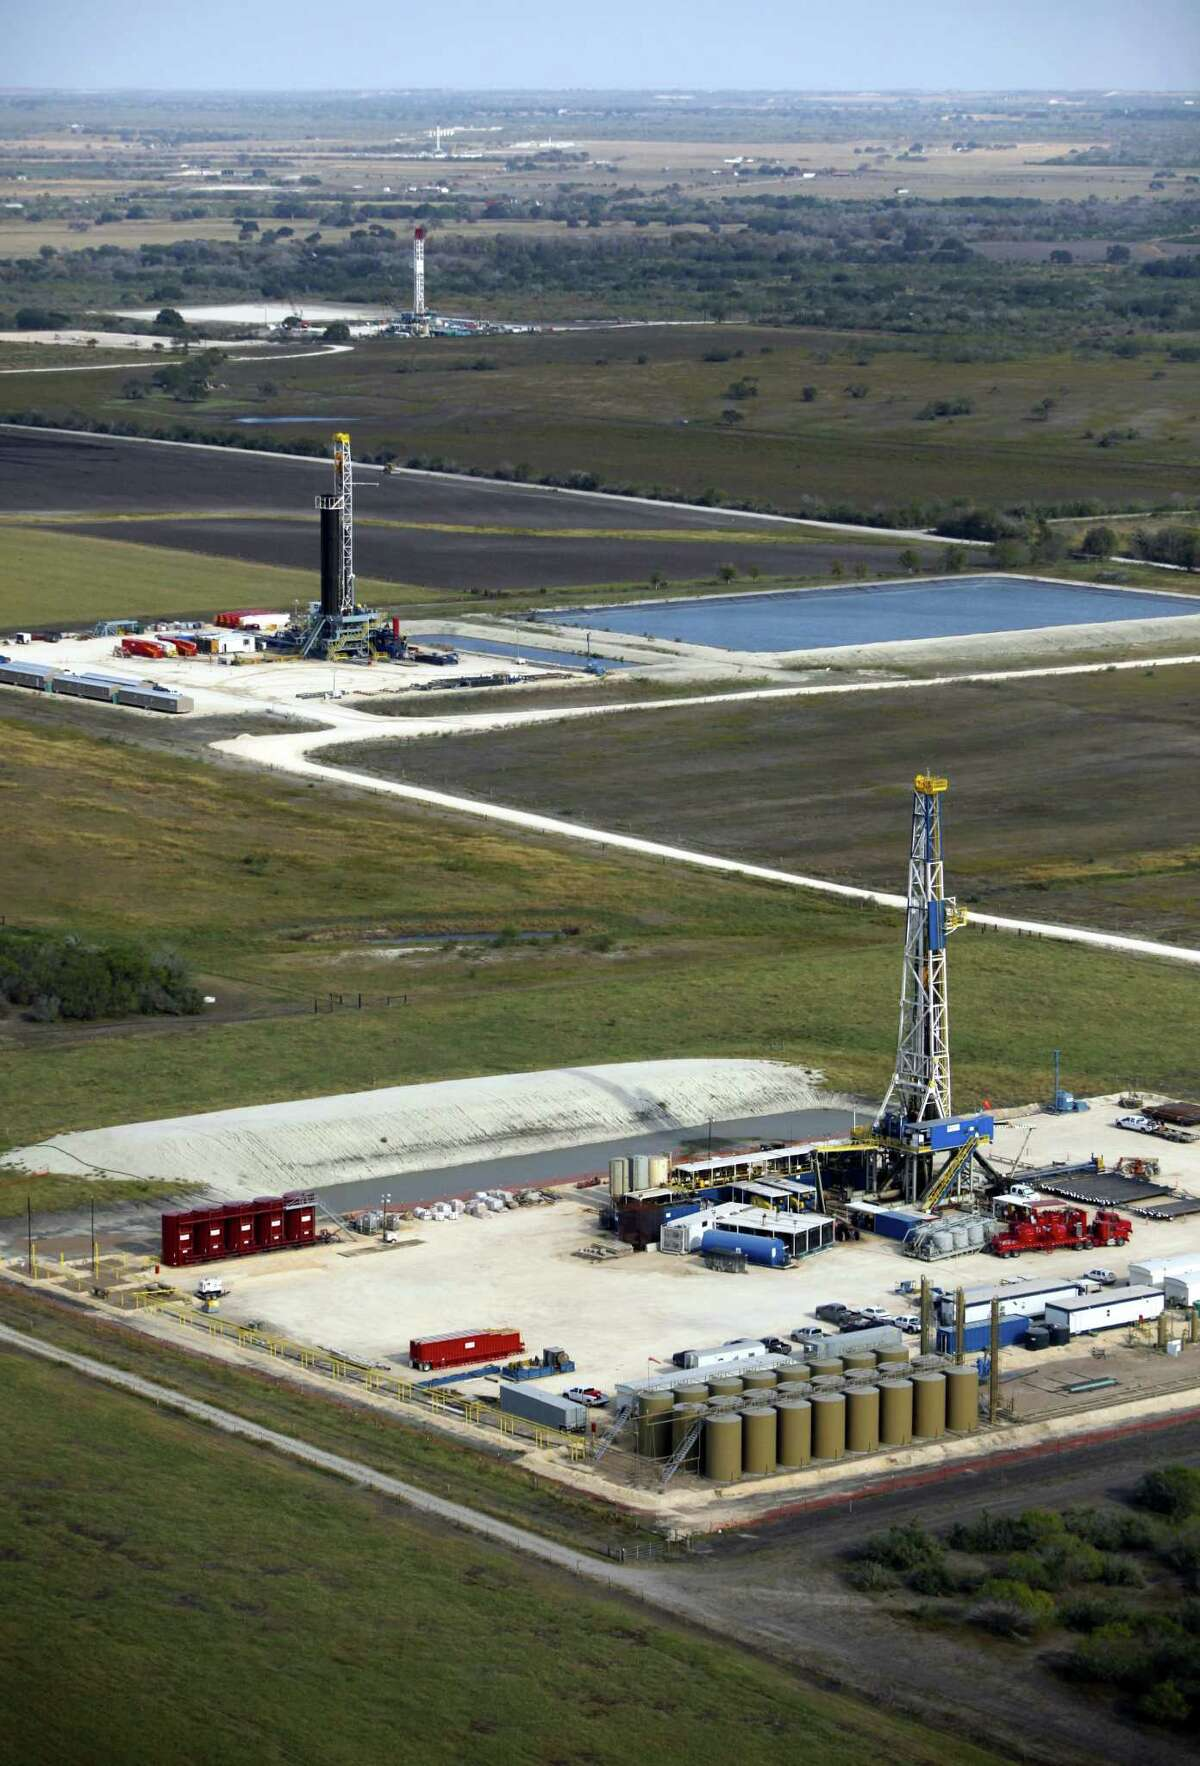 Figuring out the proper spacing of wells is perhaps as old as the oil and gas industry itself, but as horizontal wells replace verticals, the issue has become more complex.